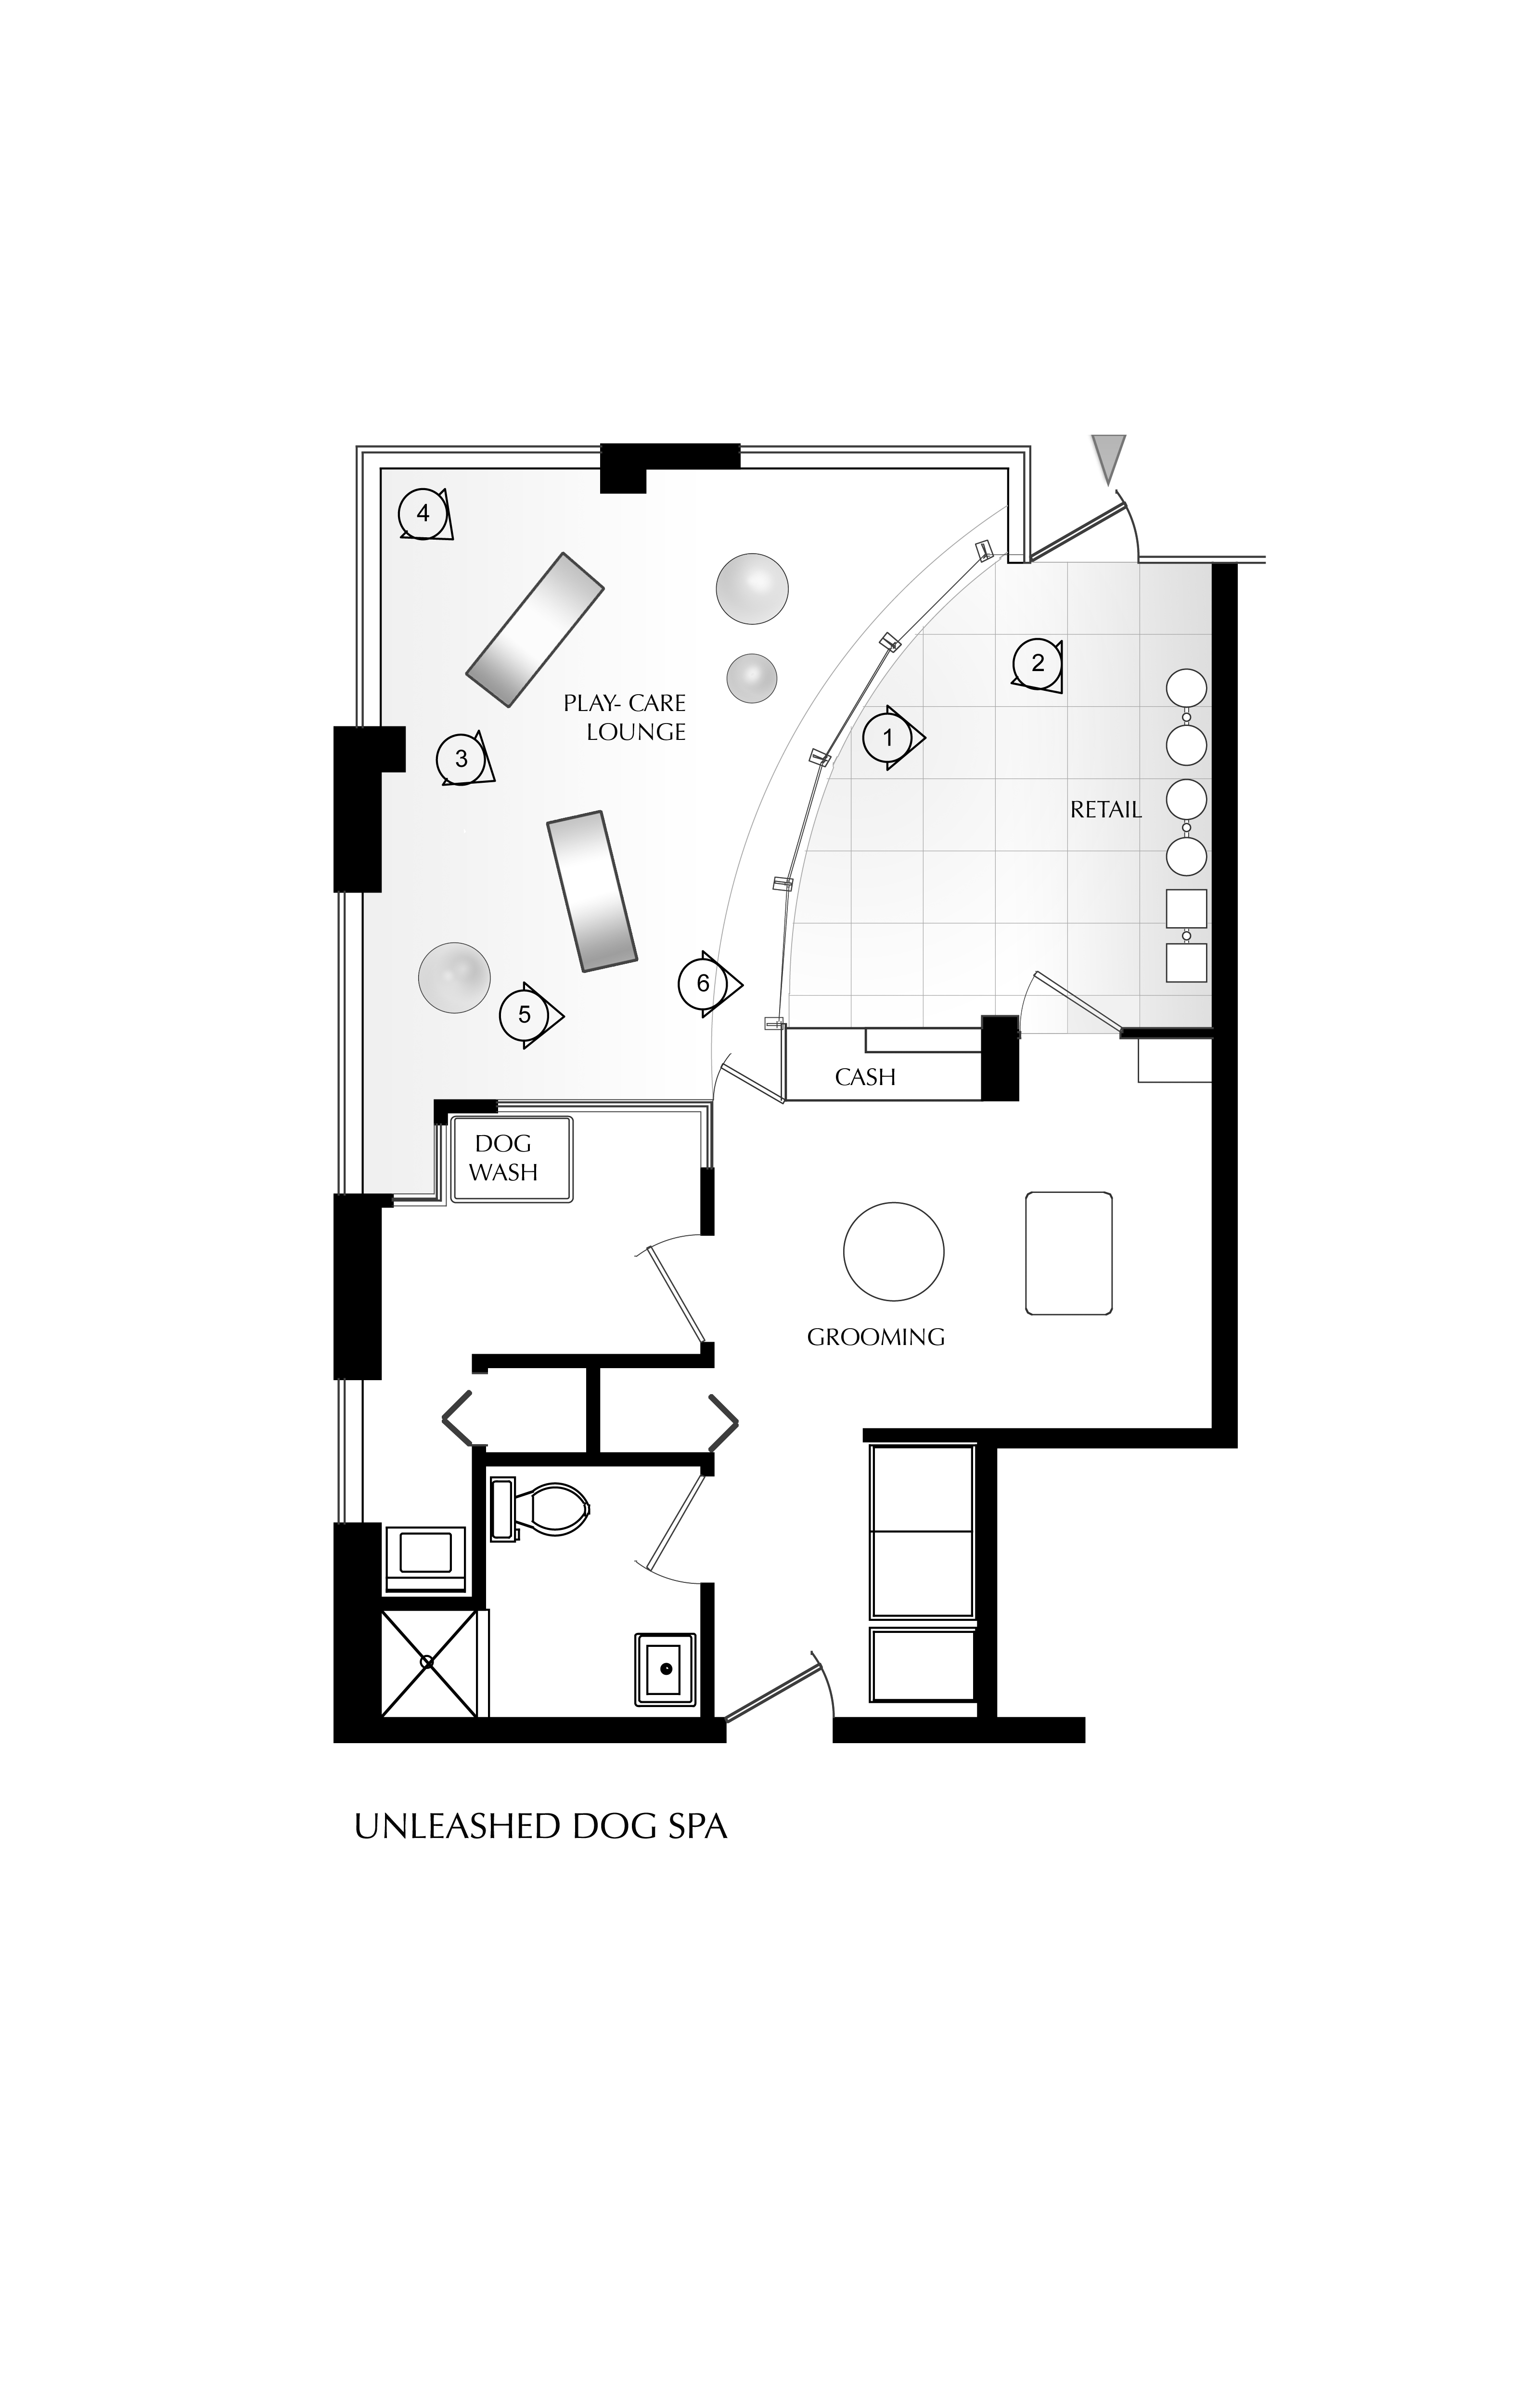 Unleashed dog spa by square one interiors karmatrendz for Salon layout plans